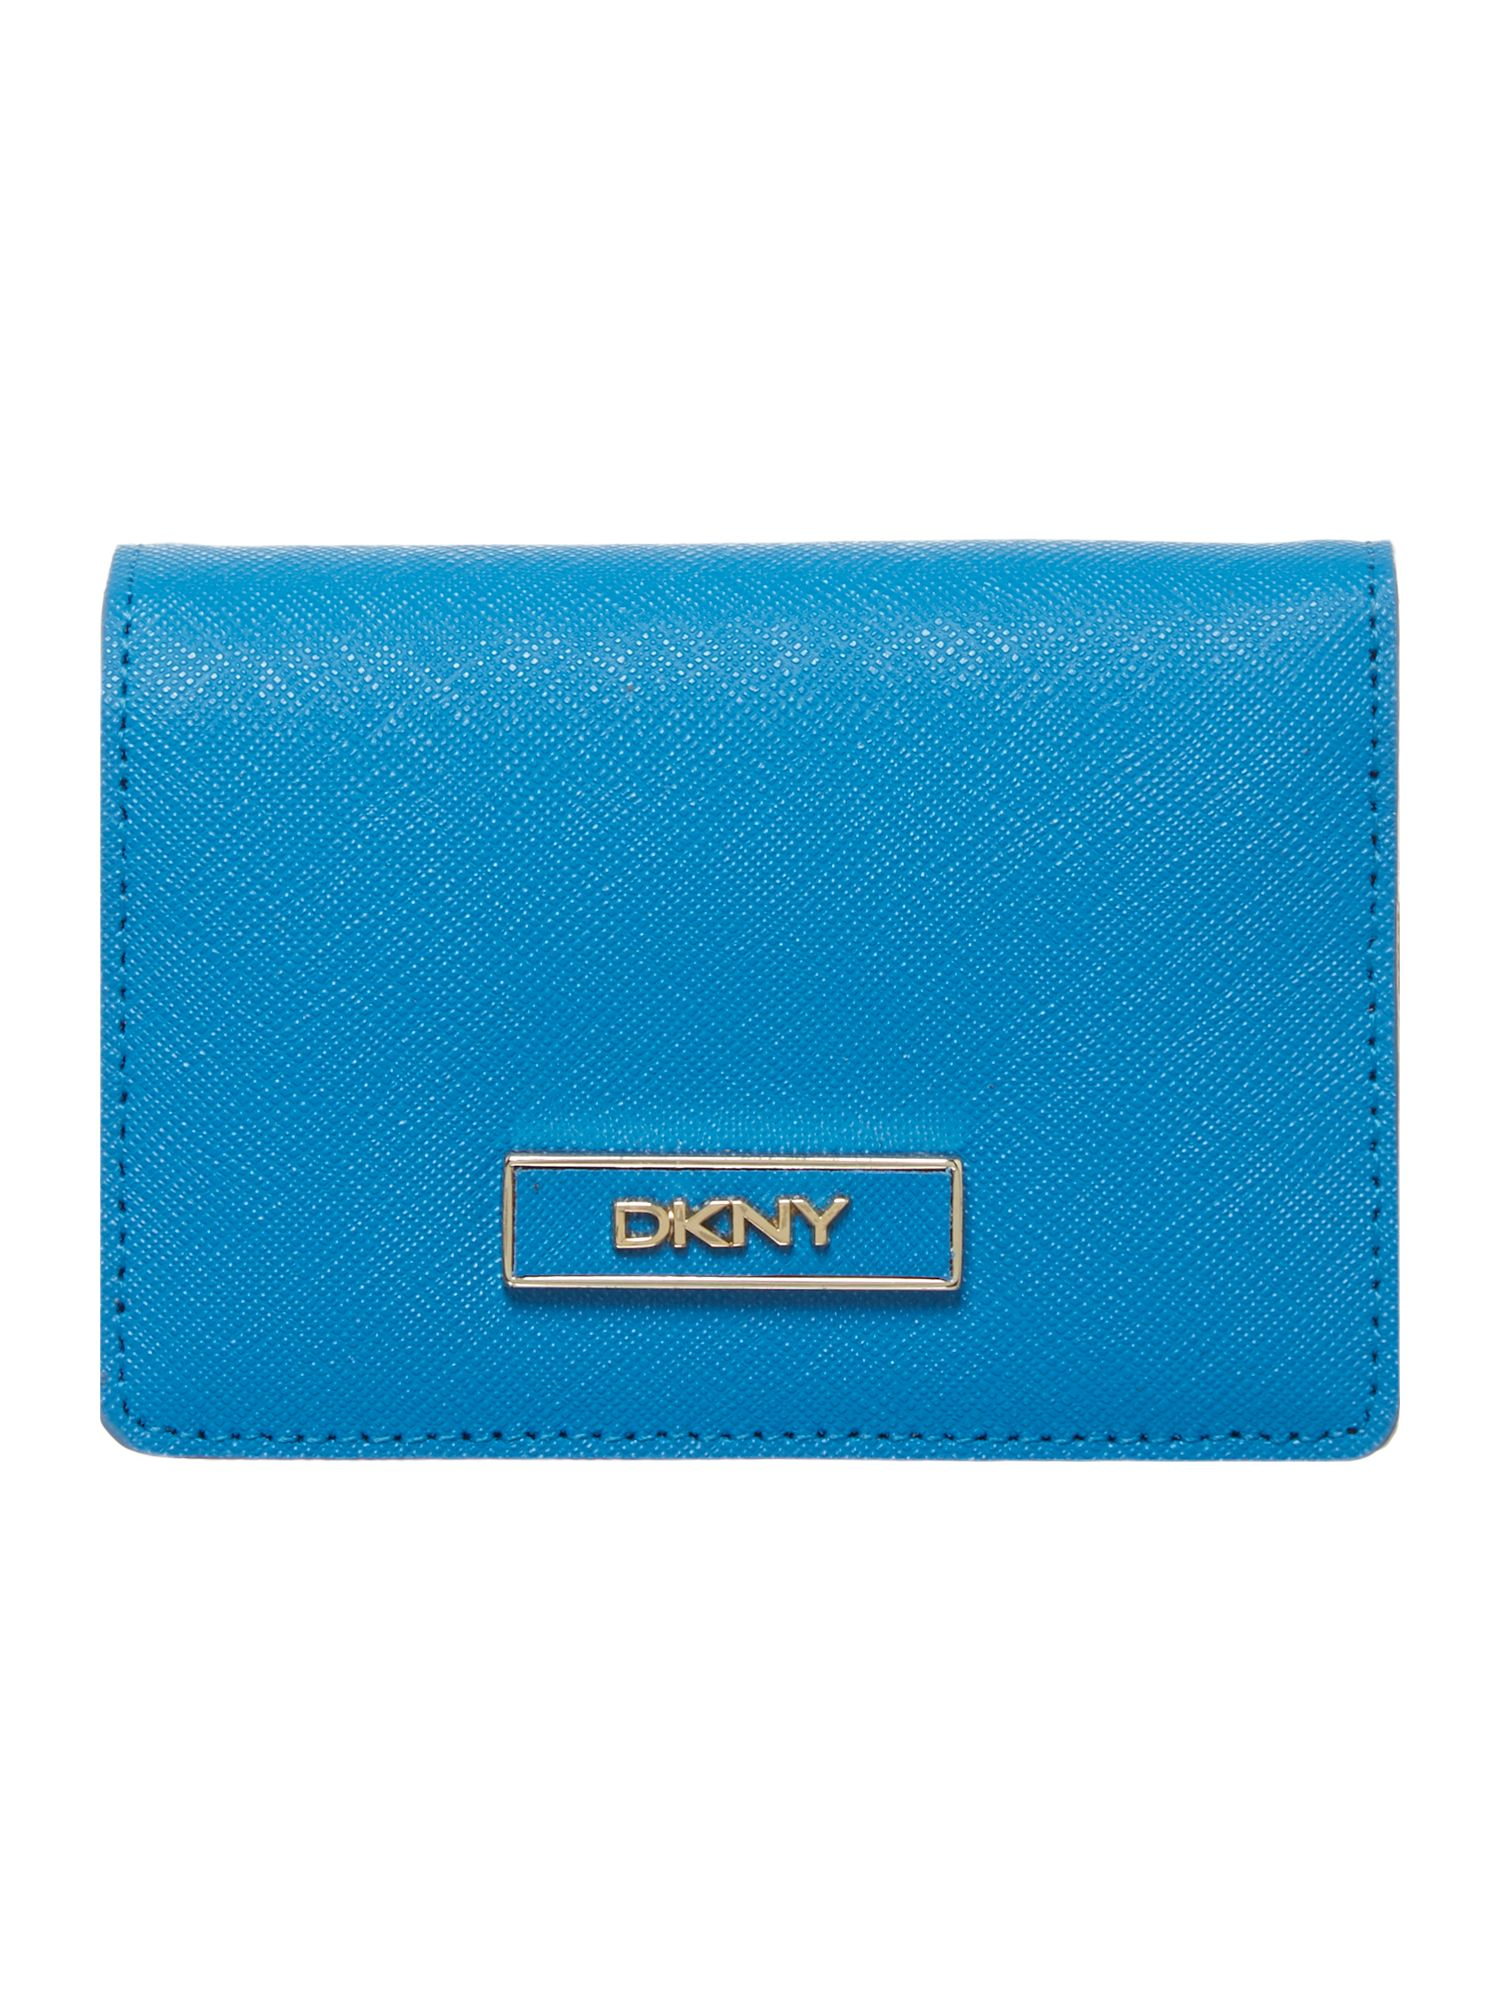 Saffiano blue travel card holder